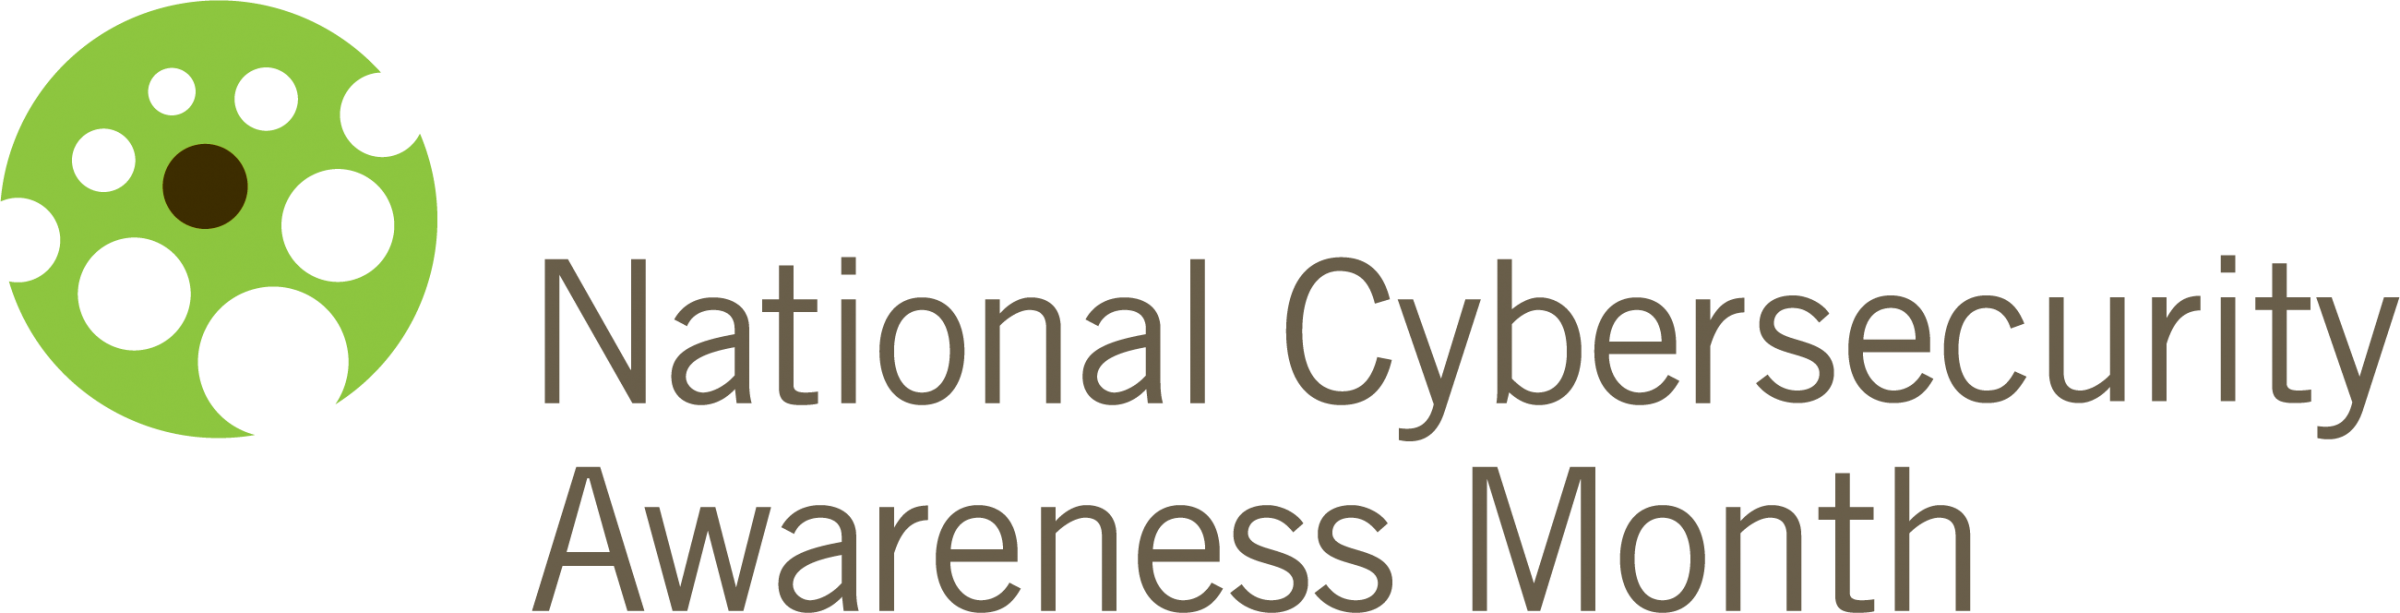 National Cyber Security Awareness Month logo